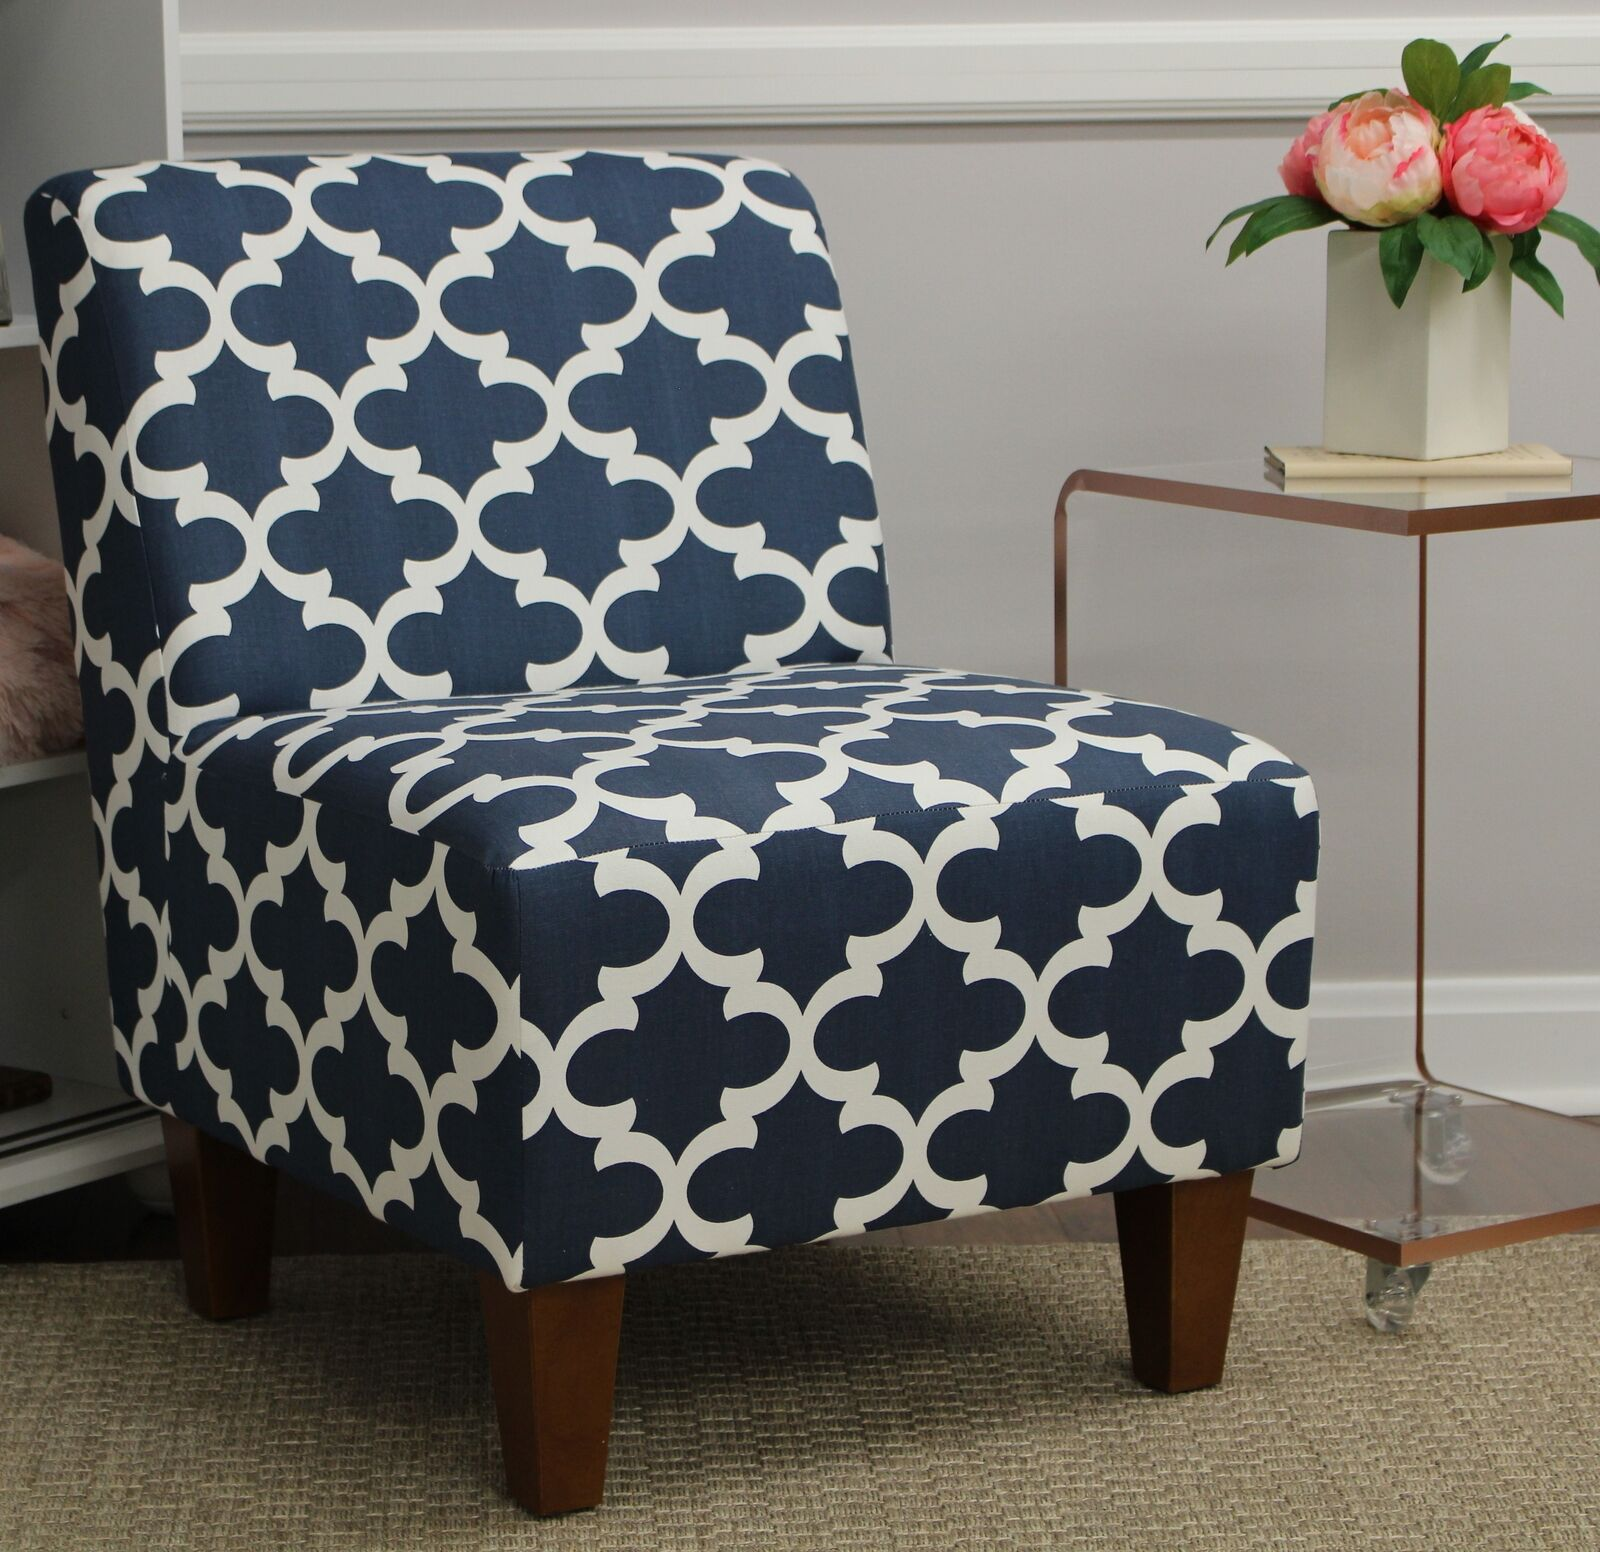 Picture of: Blue White Accent Slipper Chair Moroccan Geometric Print Upholstered Modern For Sale Online